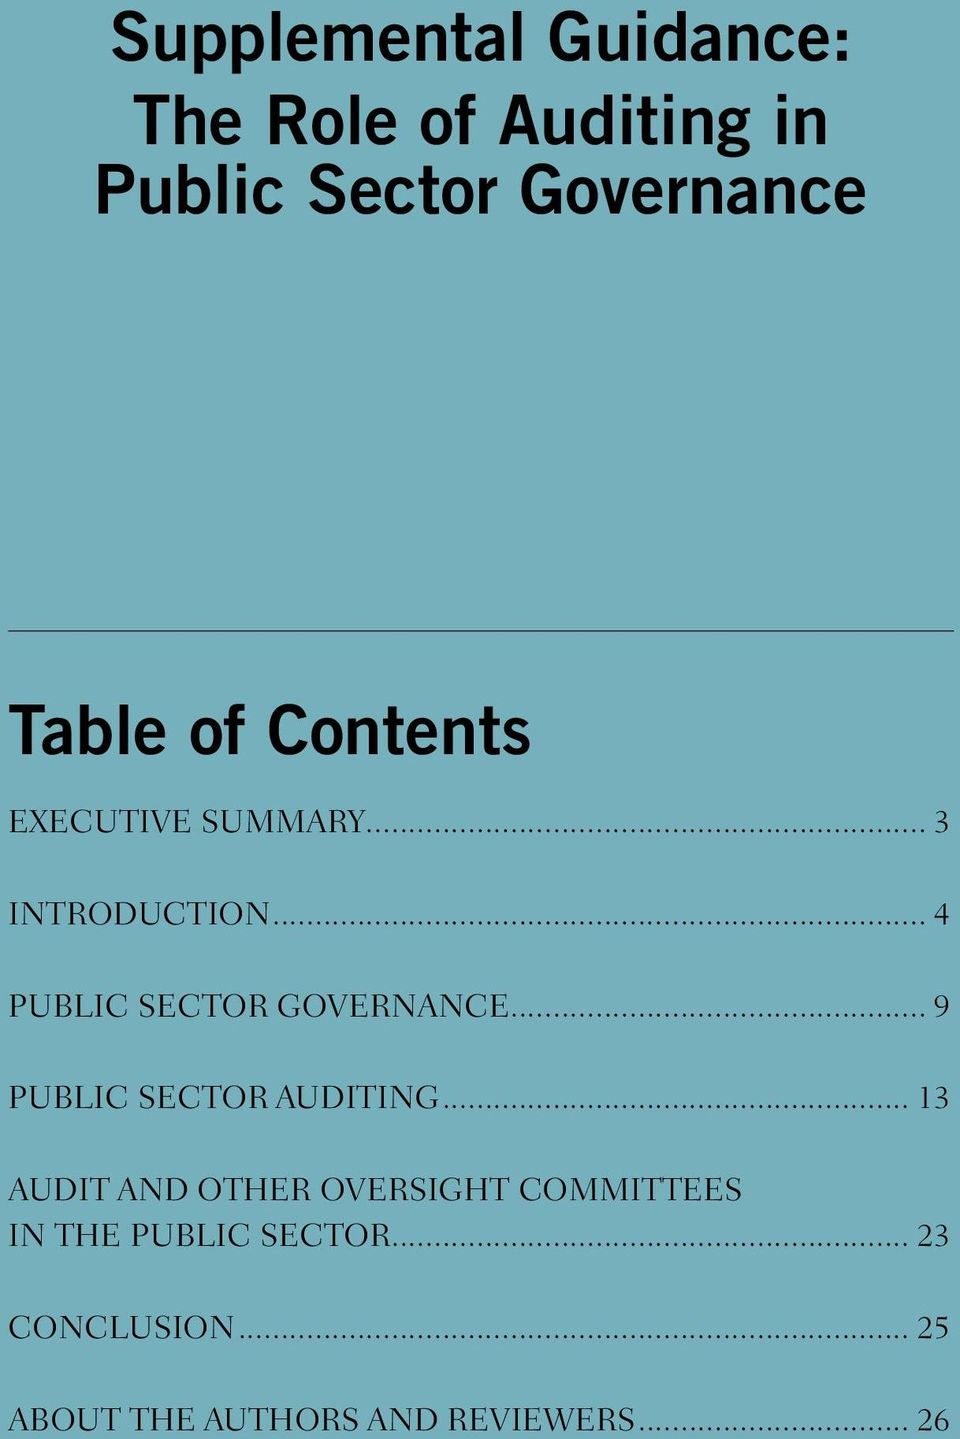 .. 4 PUBLIC SECTOR GOVERNANCE... 9 PUBLIC SECTOR AUDITING.